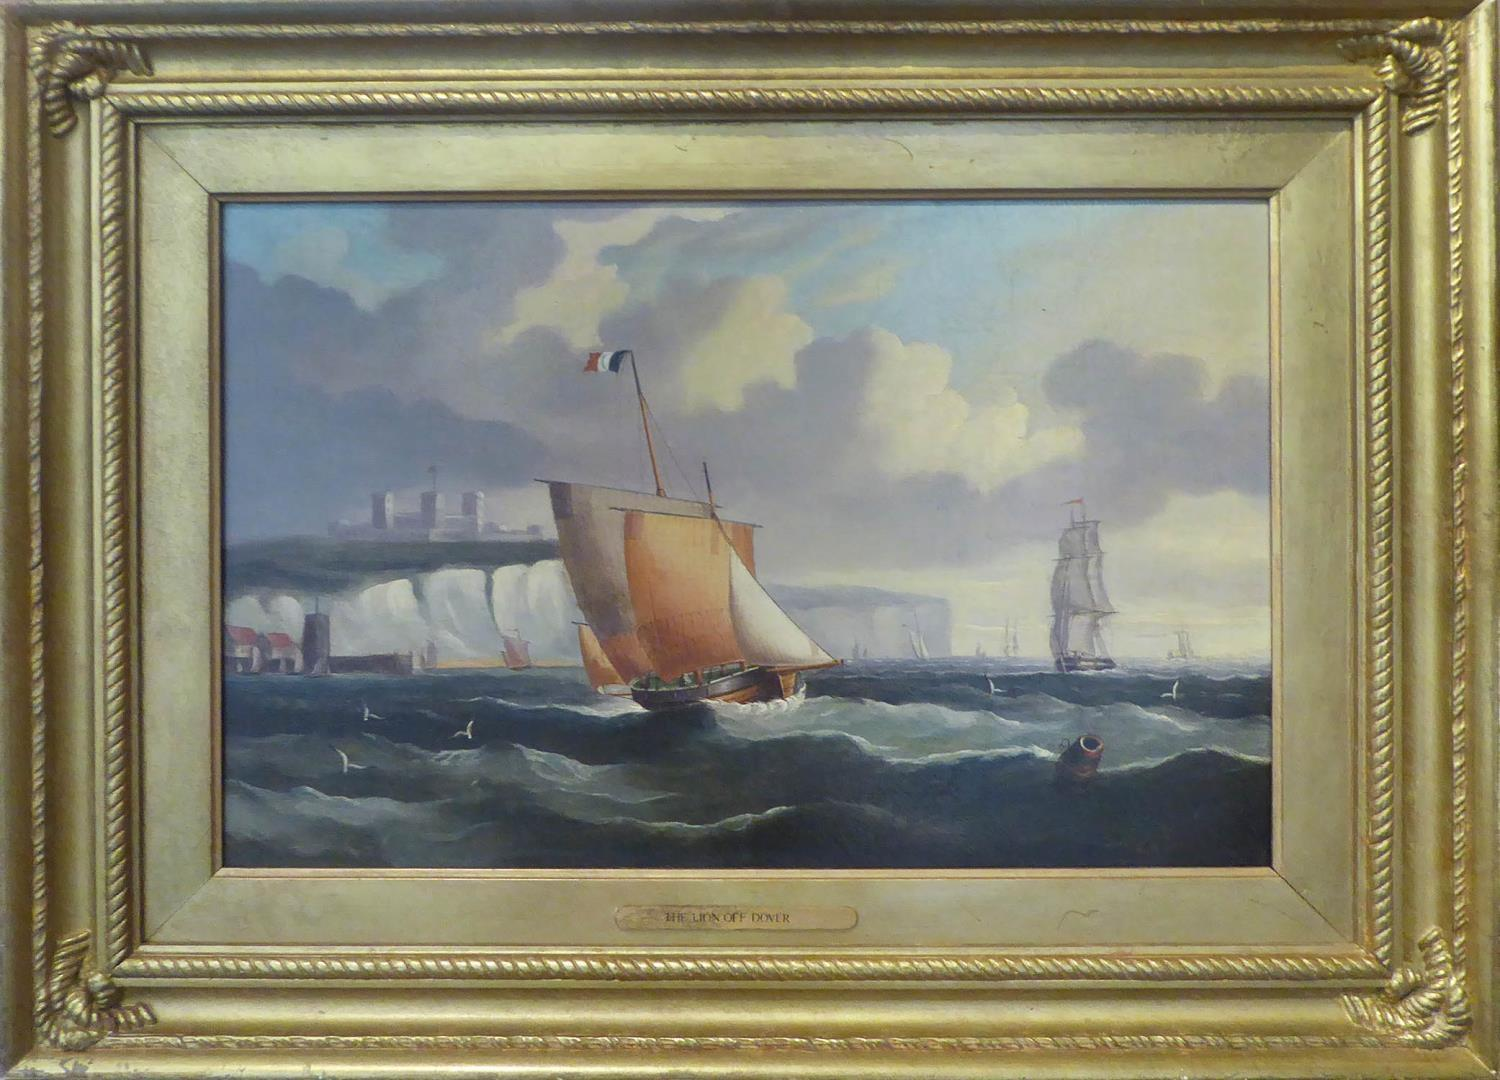 WILLIAM BARNETT SPENCER (British 1840-1870) 'The Lion off Dover' and 'The Lion off Portsmouth', a - Image 3 of 4